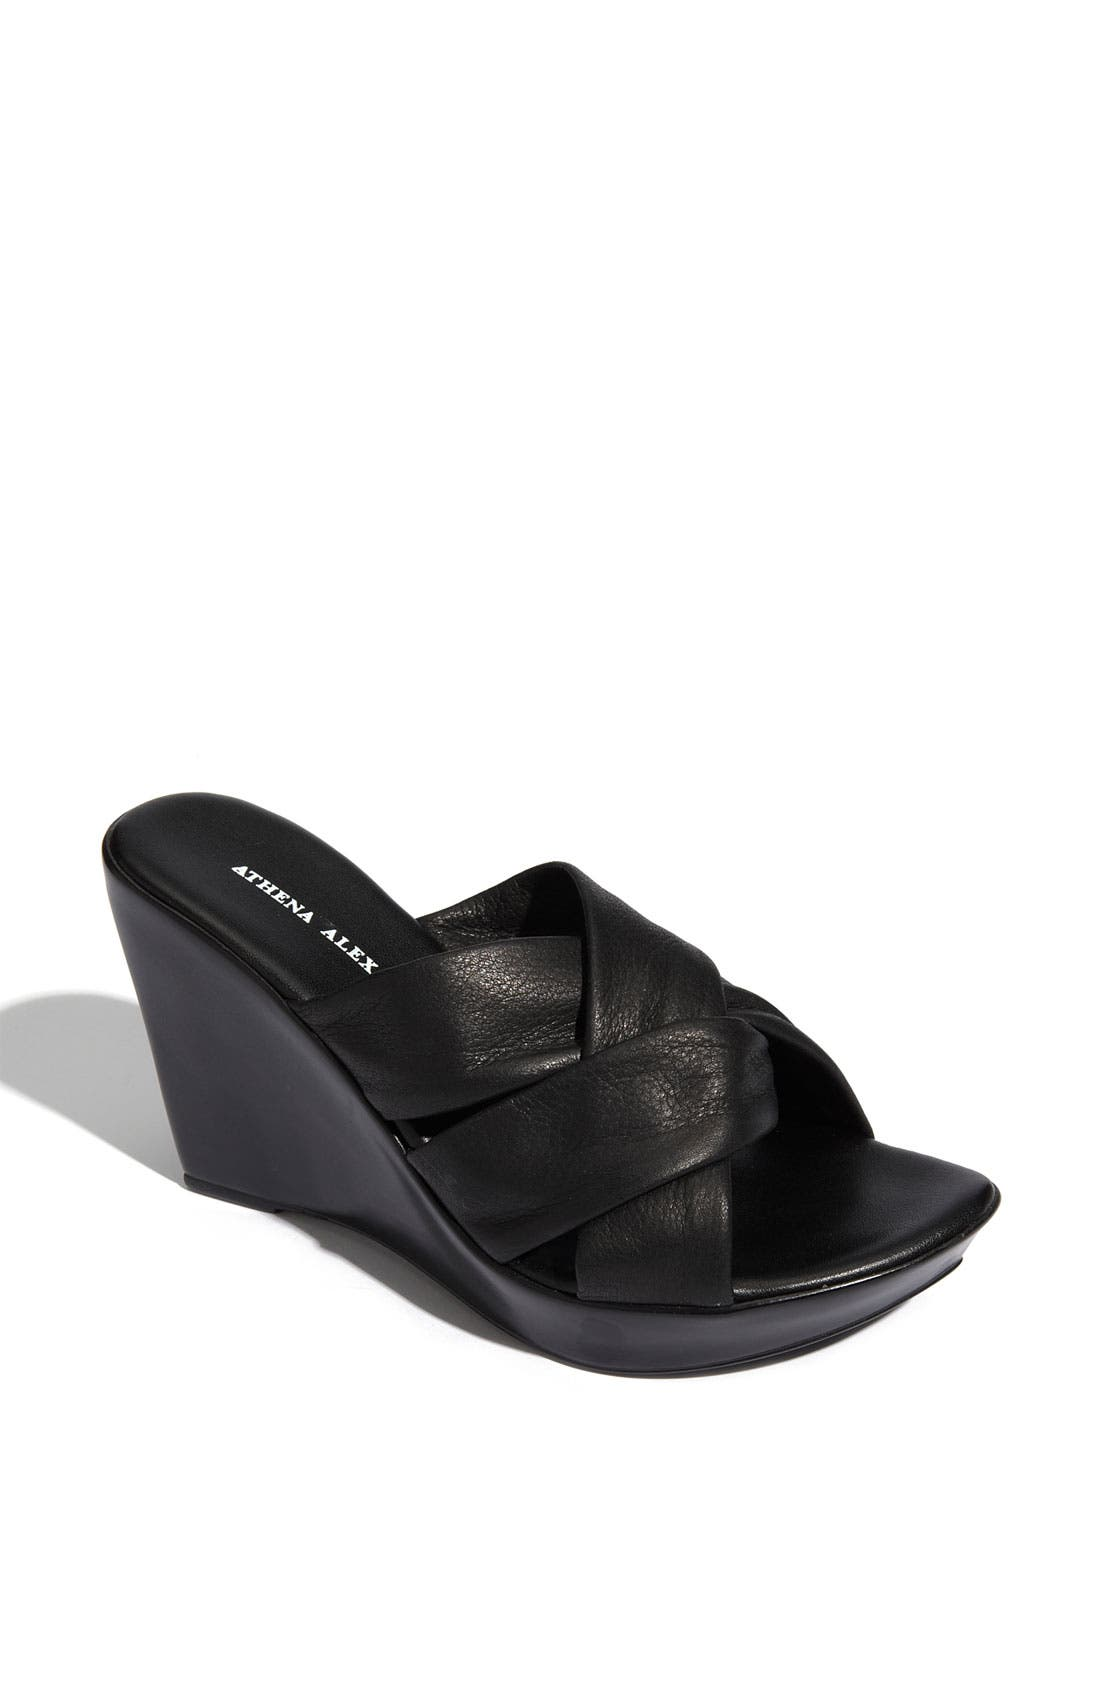 Alternate Image 1 Selected - Athena Alexander 'Janice' Wedge Slide